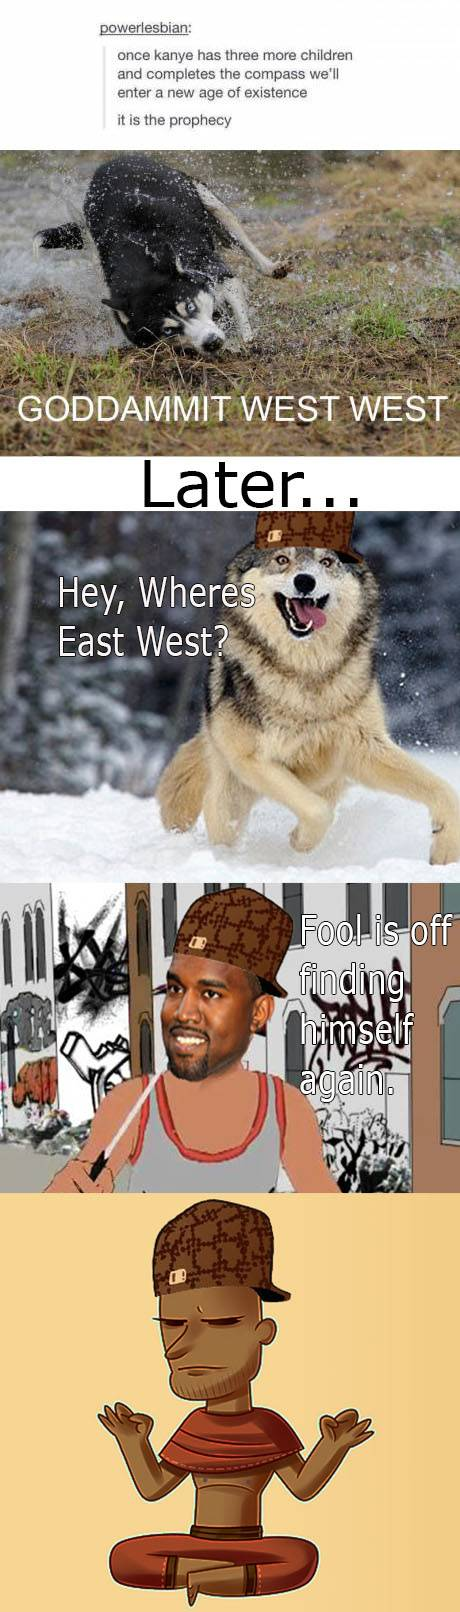 West West and Moon Moon must be cousins